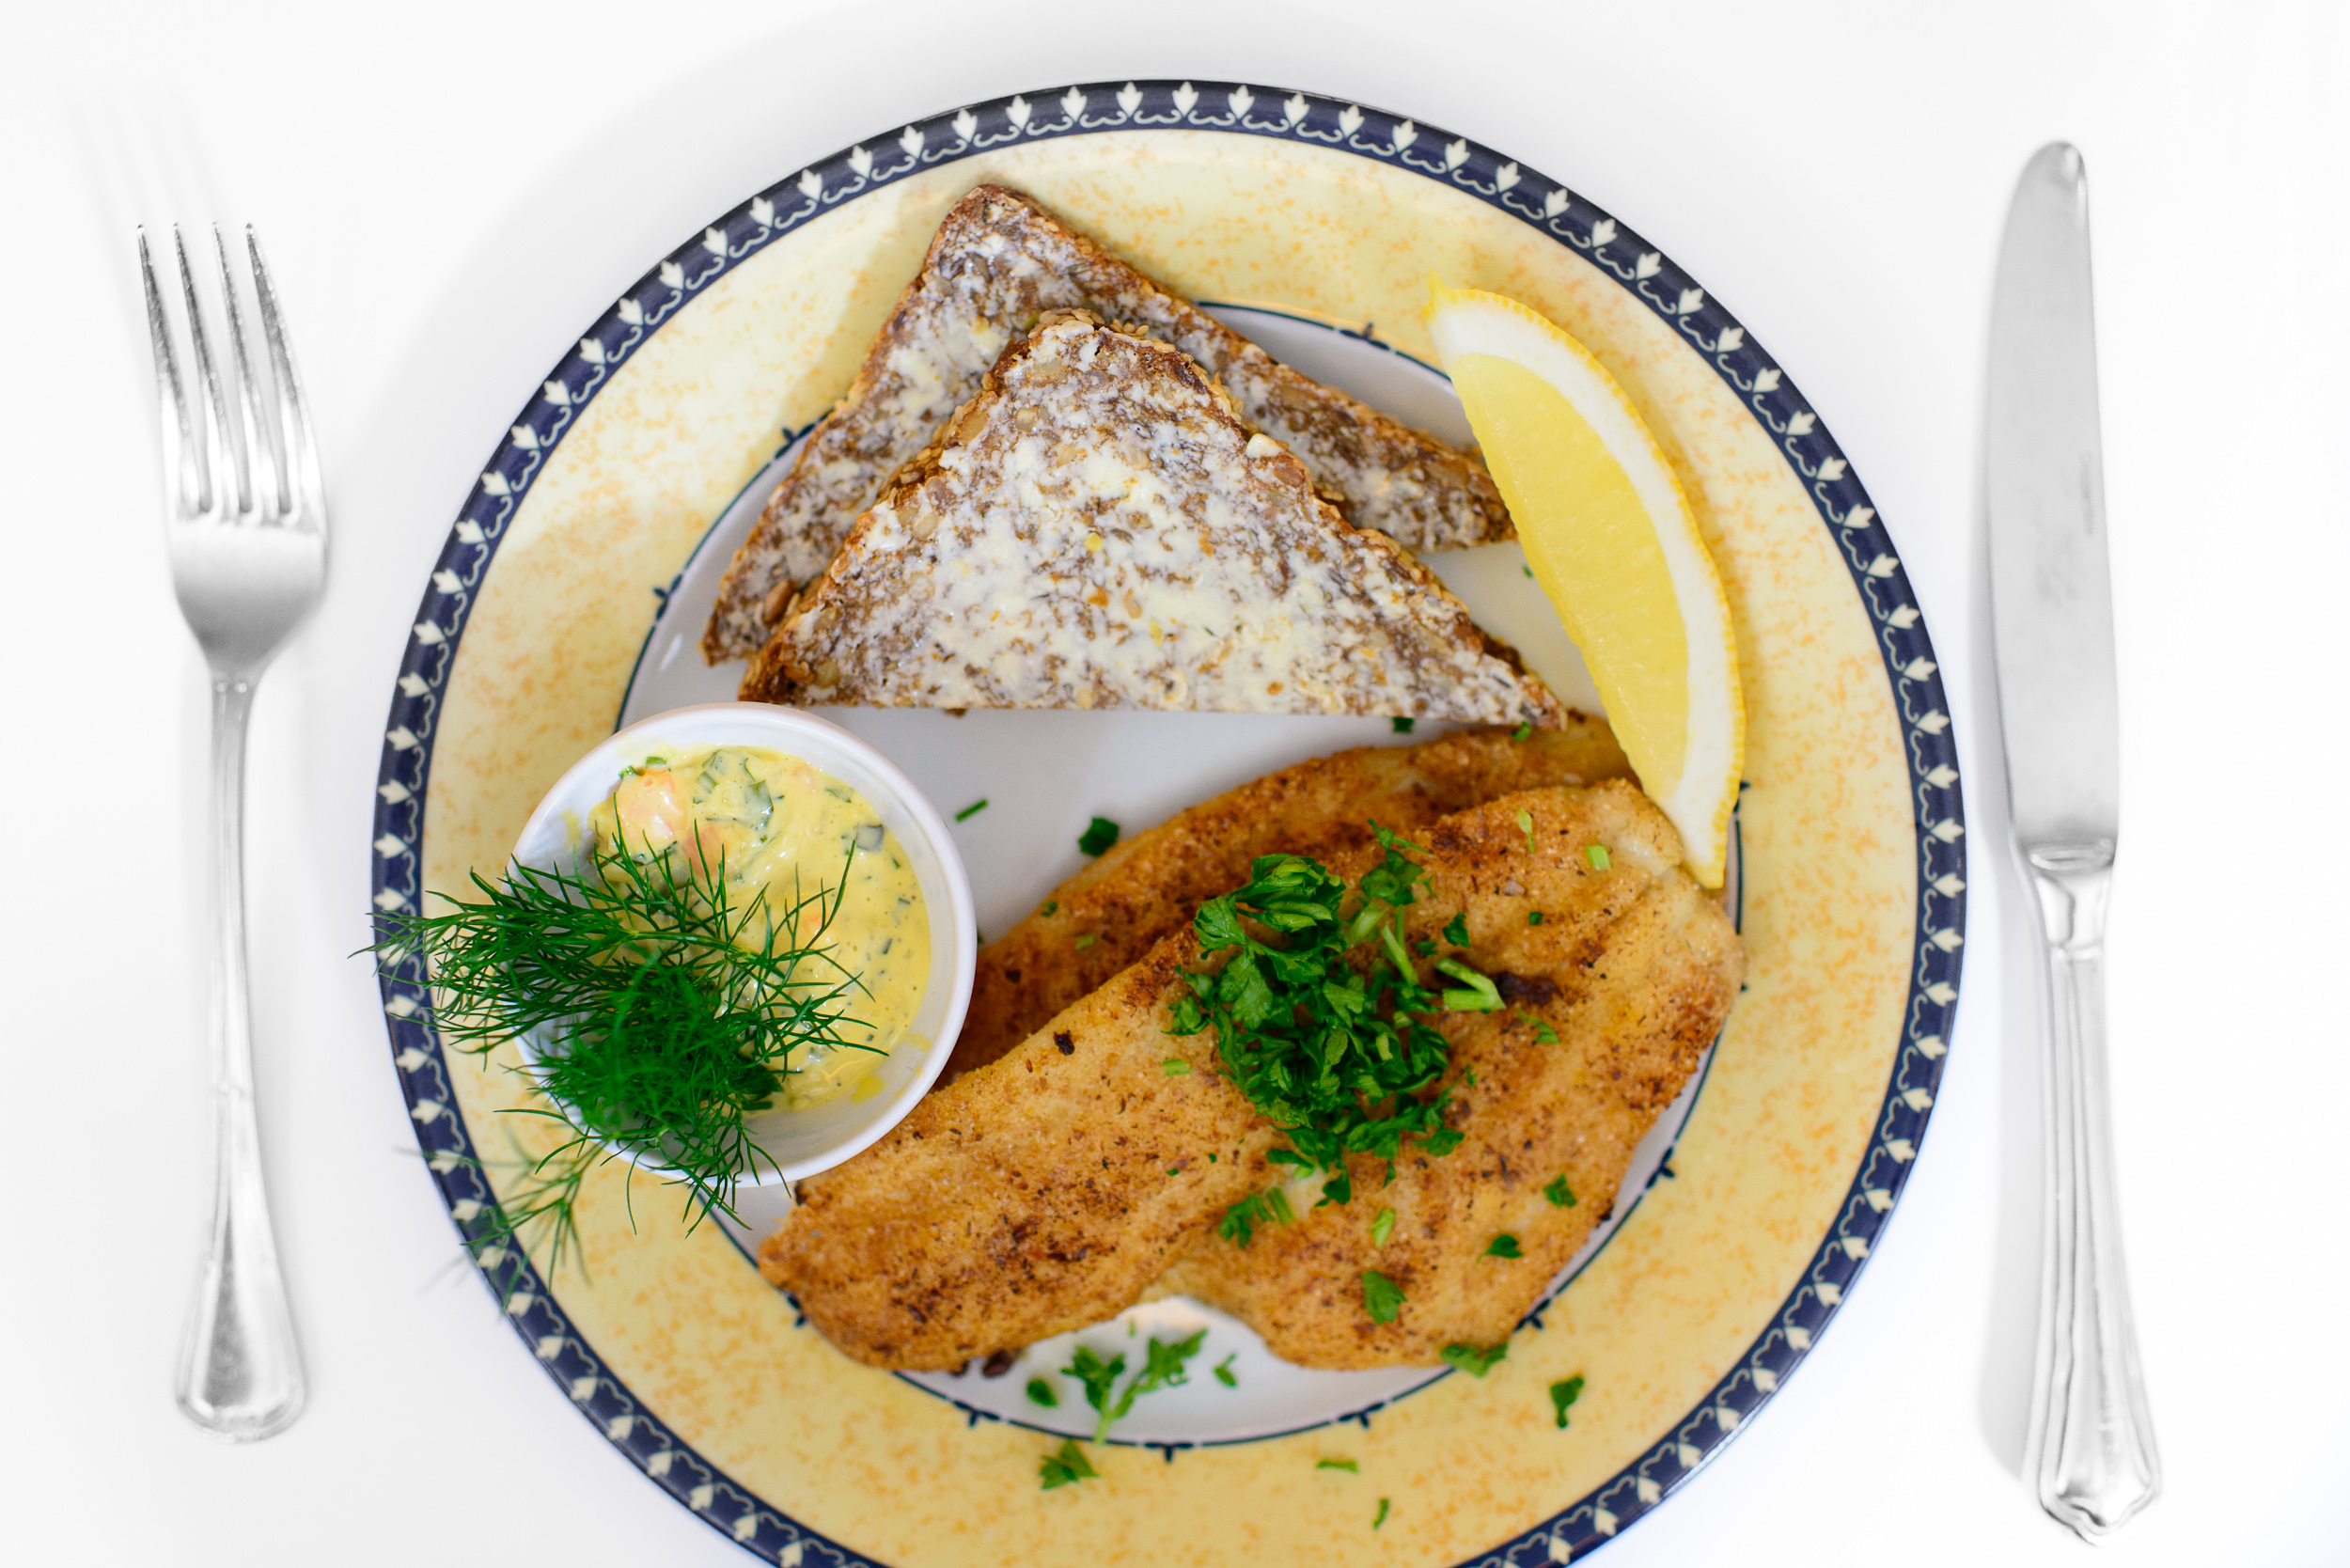 Pan-fried fillets of plaice, lemon and tartare suace